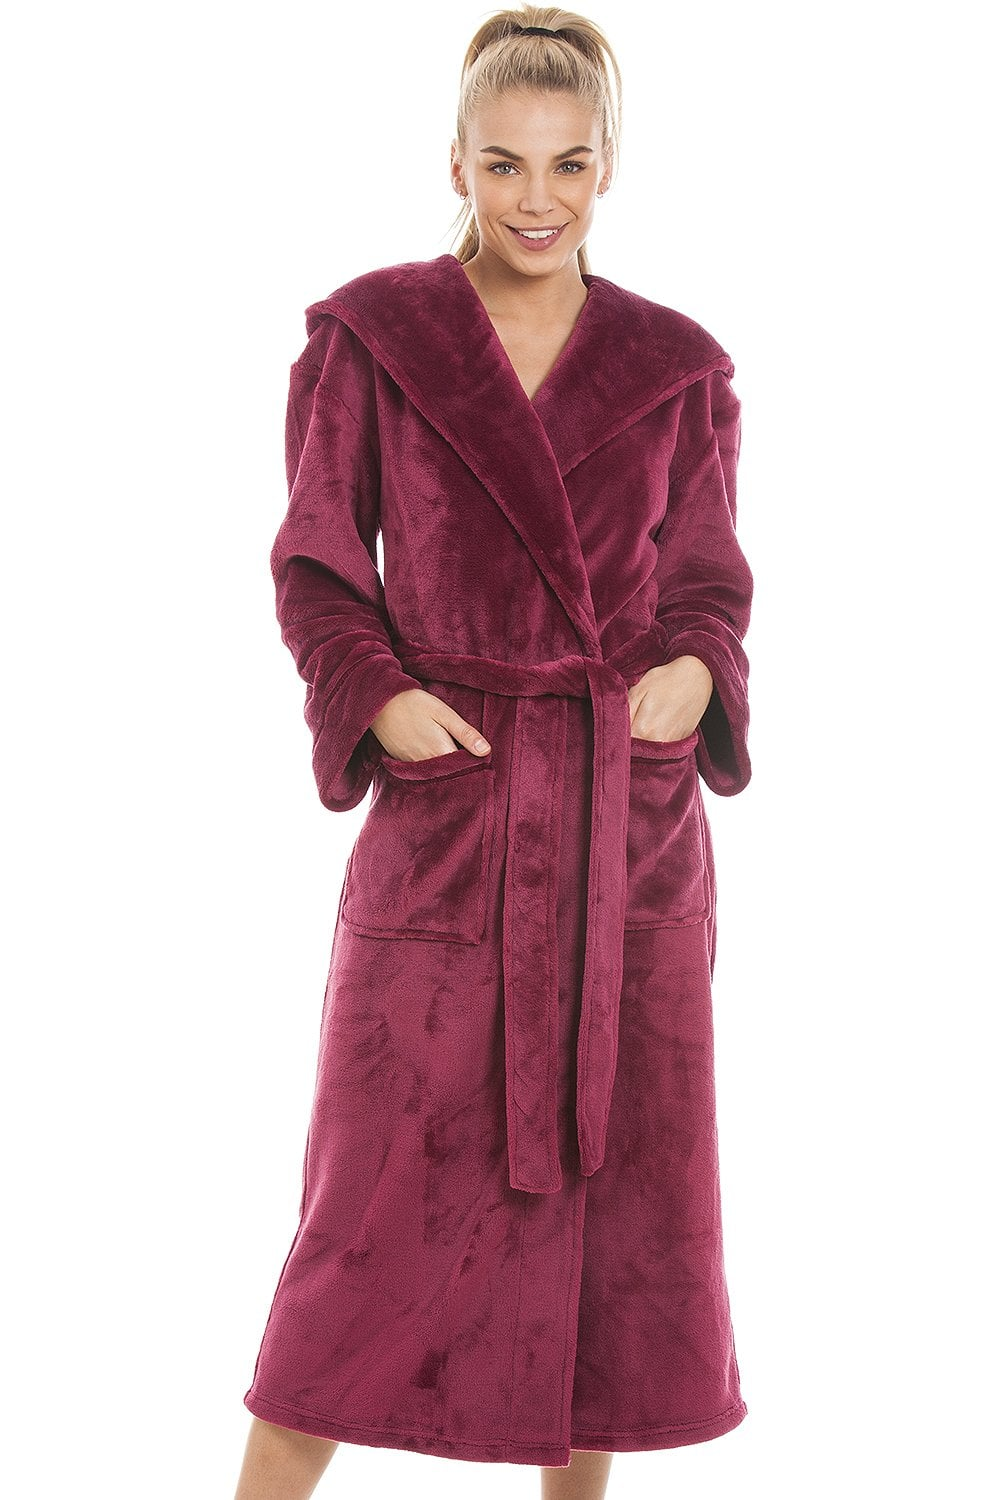 b348e0a918 Camille Super Soft Fleece Ruby Red Dressing gown